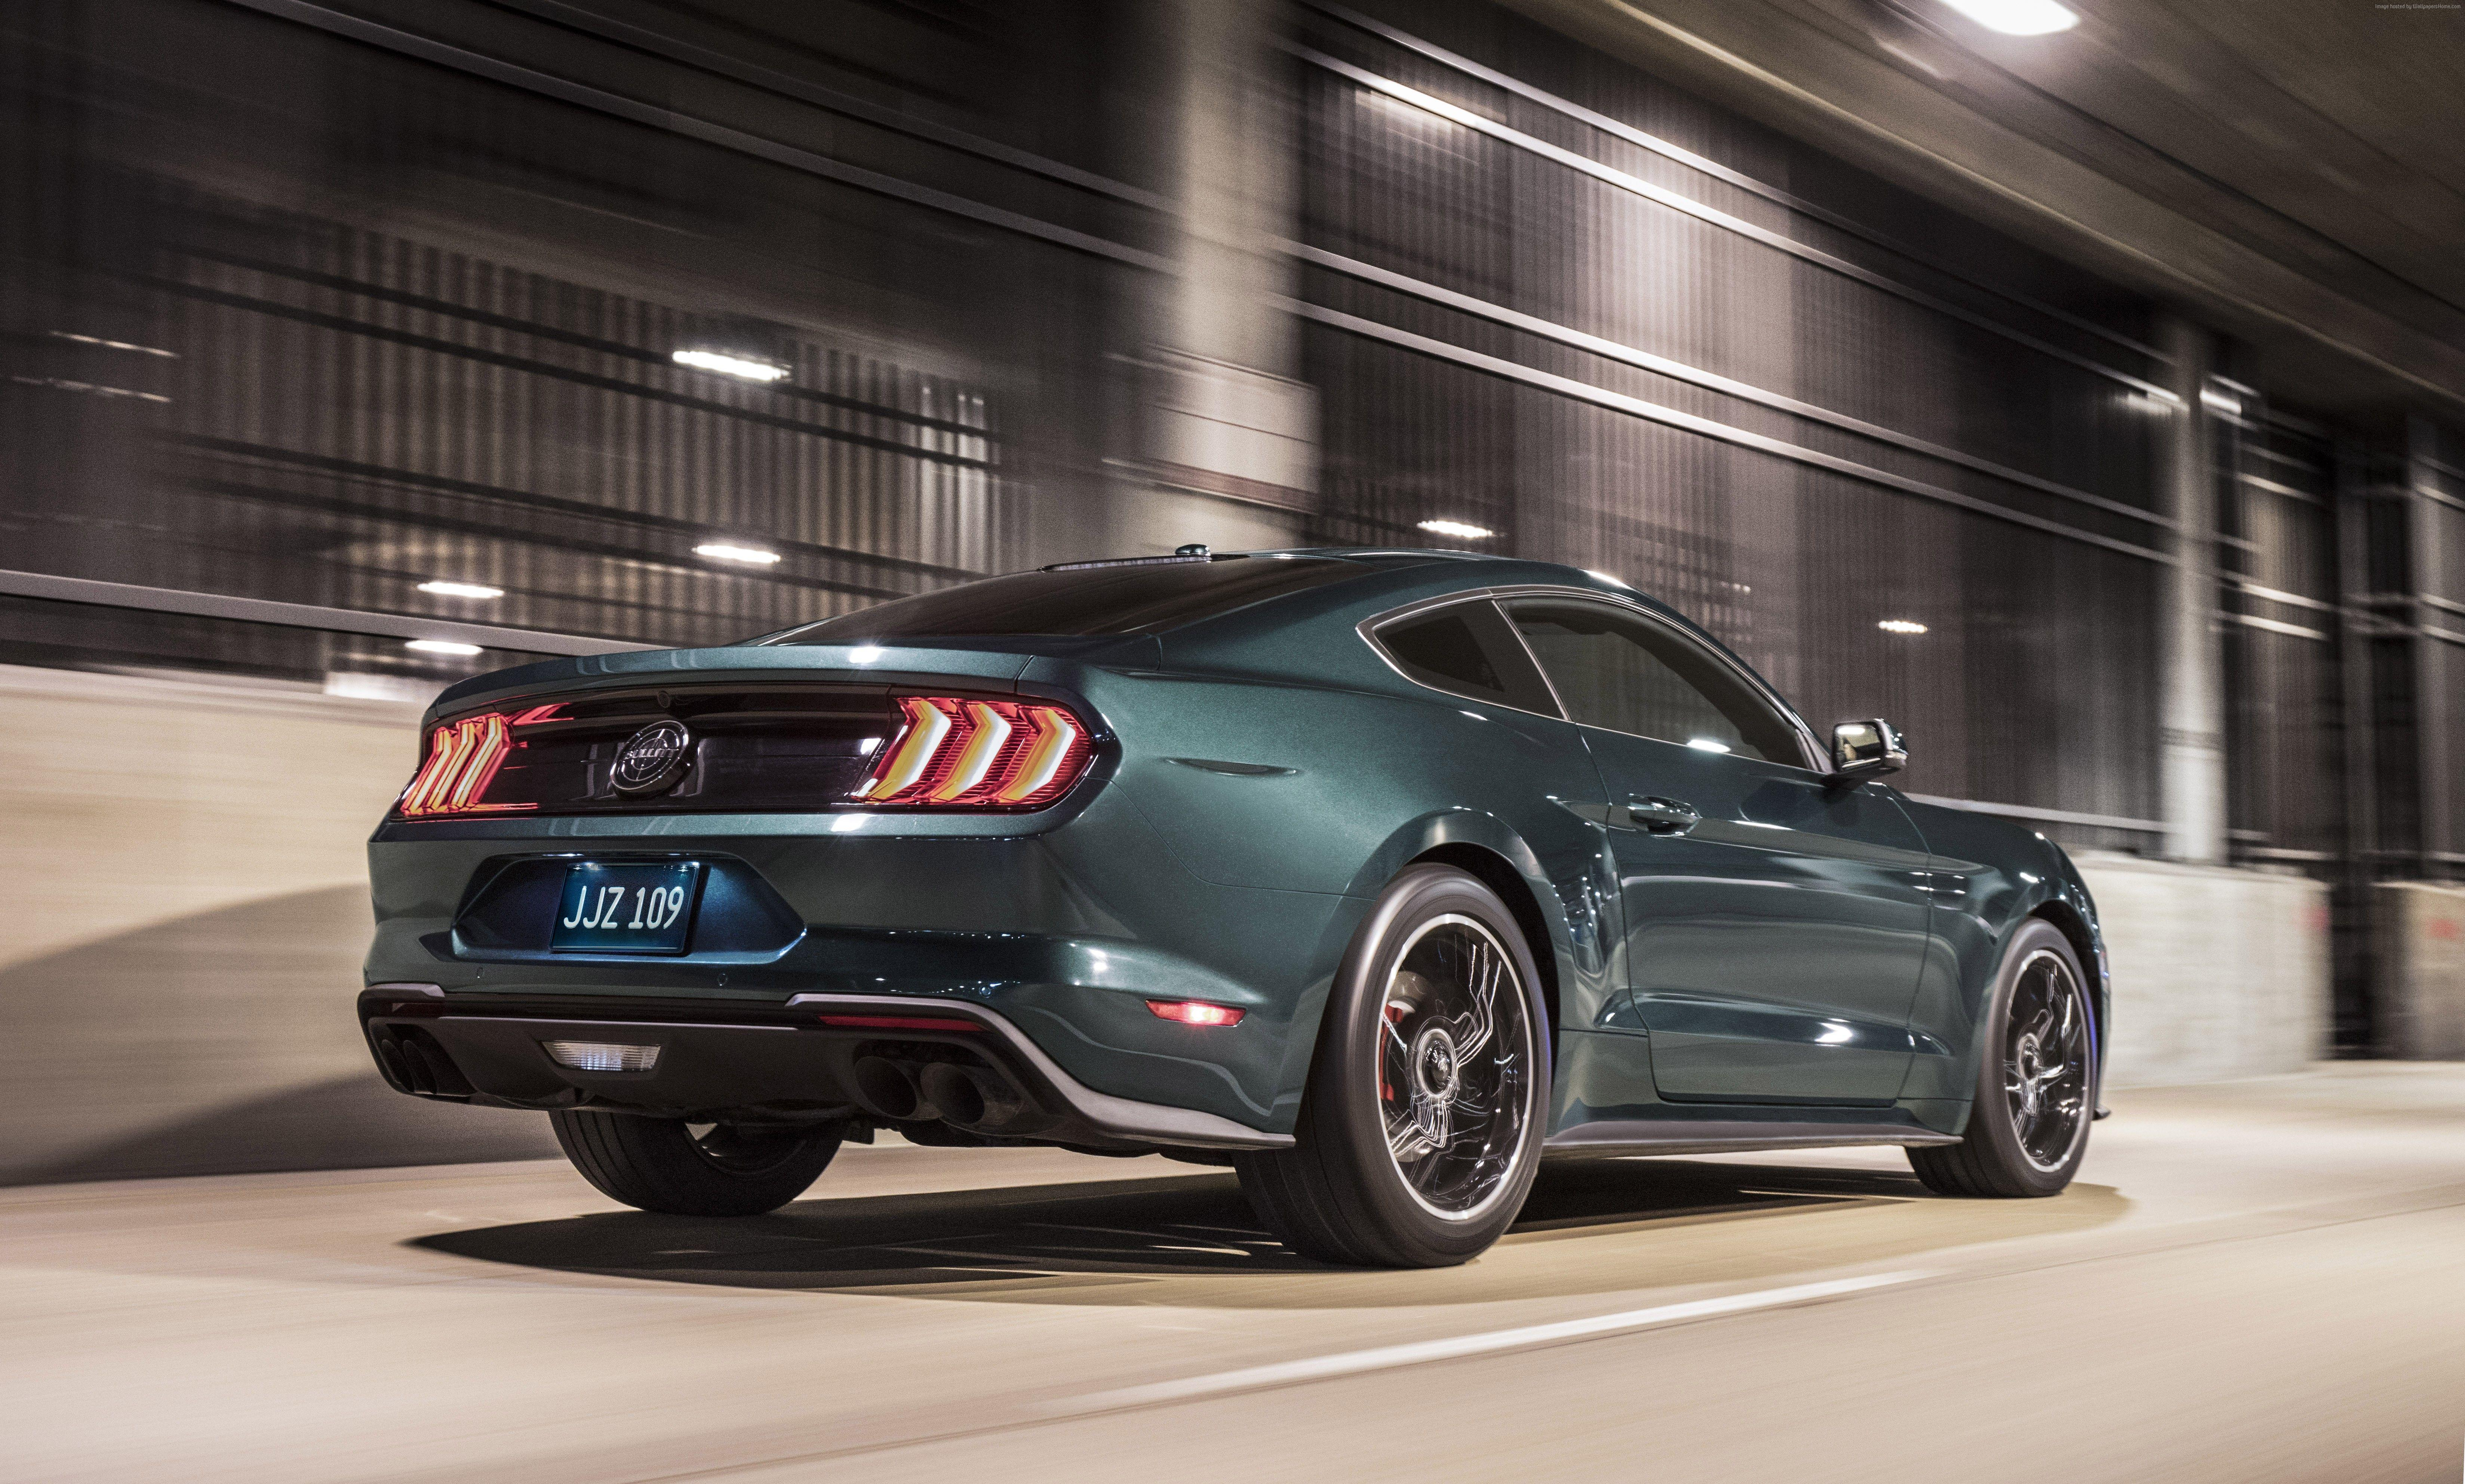 Wallpapers Ford Mustang Bullitt Download 4 Image